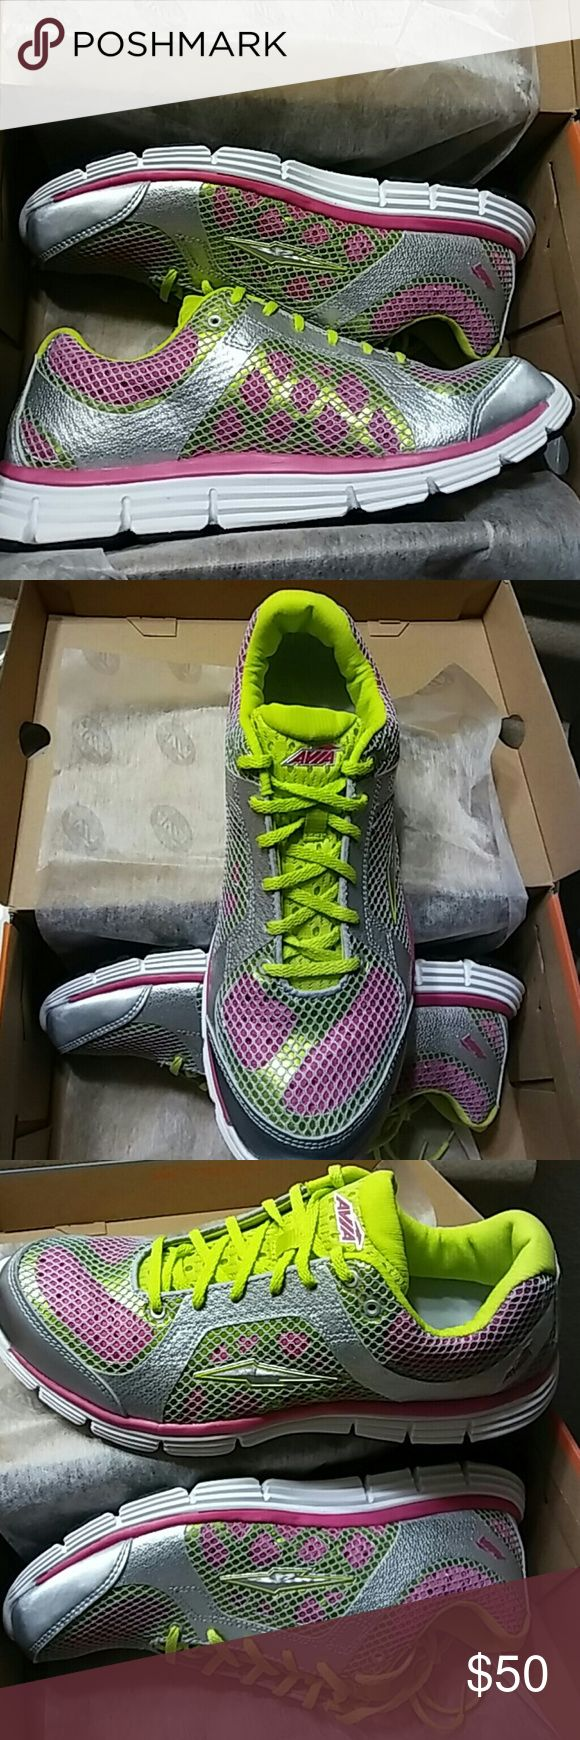 Avia Running Shoes Brand new Avia Shoes